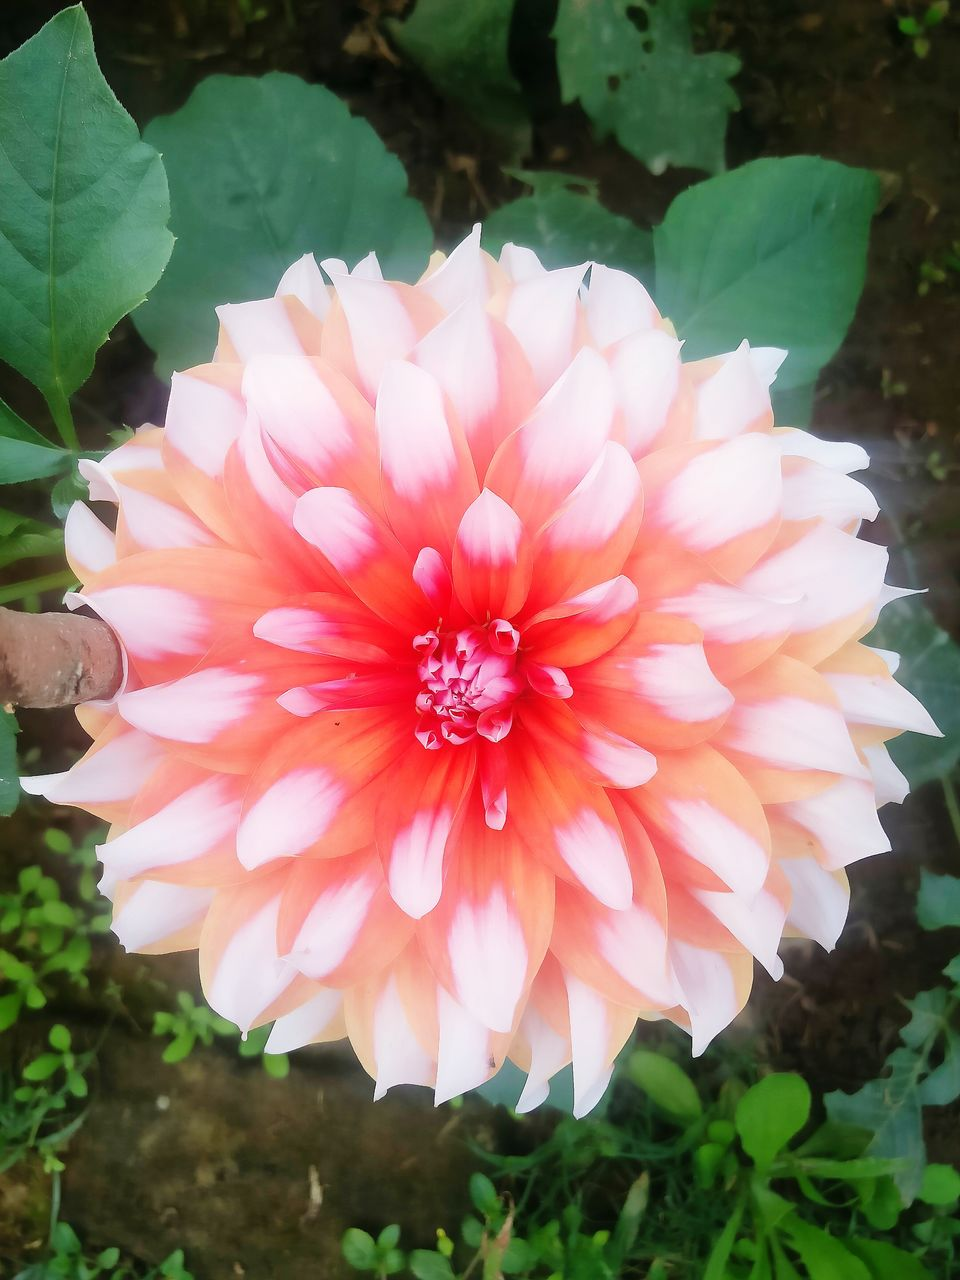 flower, petal, flower head, fragility, nature, beauty in nature, plant, freshness, outdoors, growth, day, close-up, no people